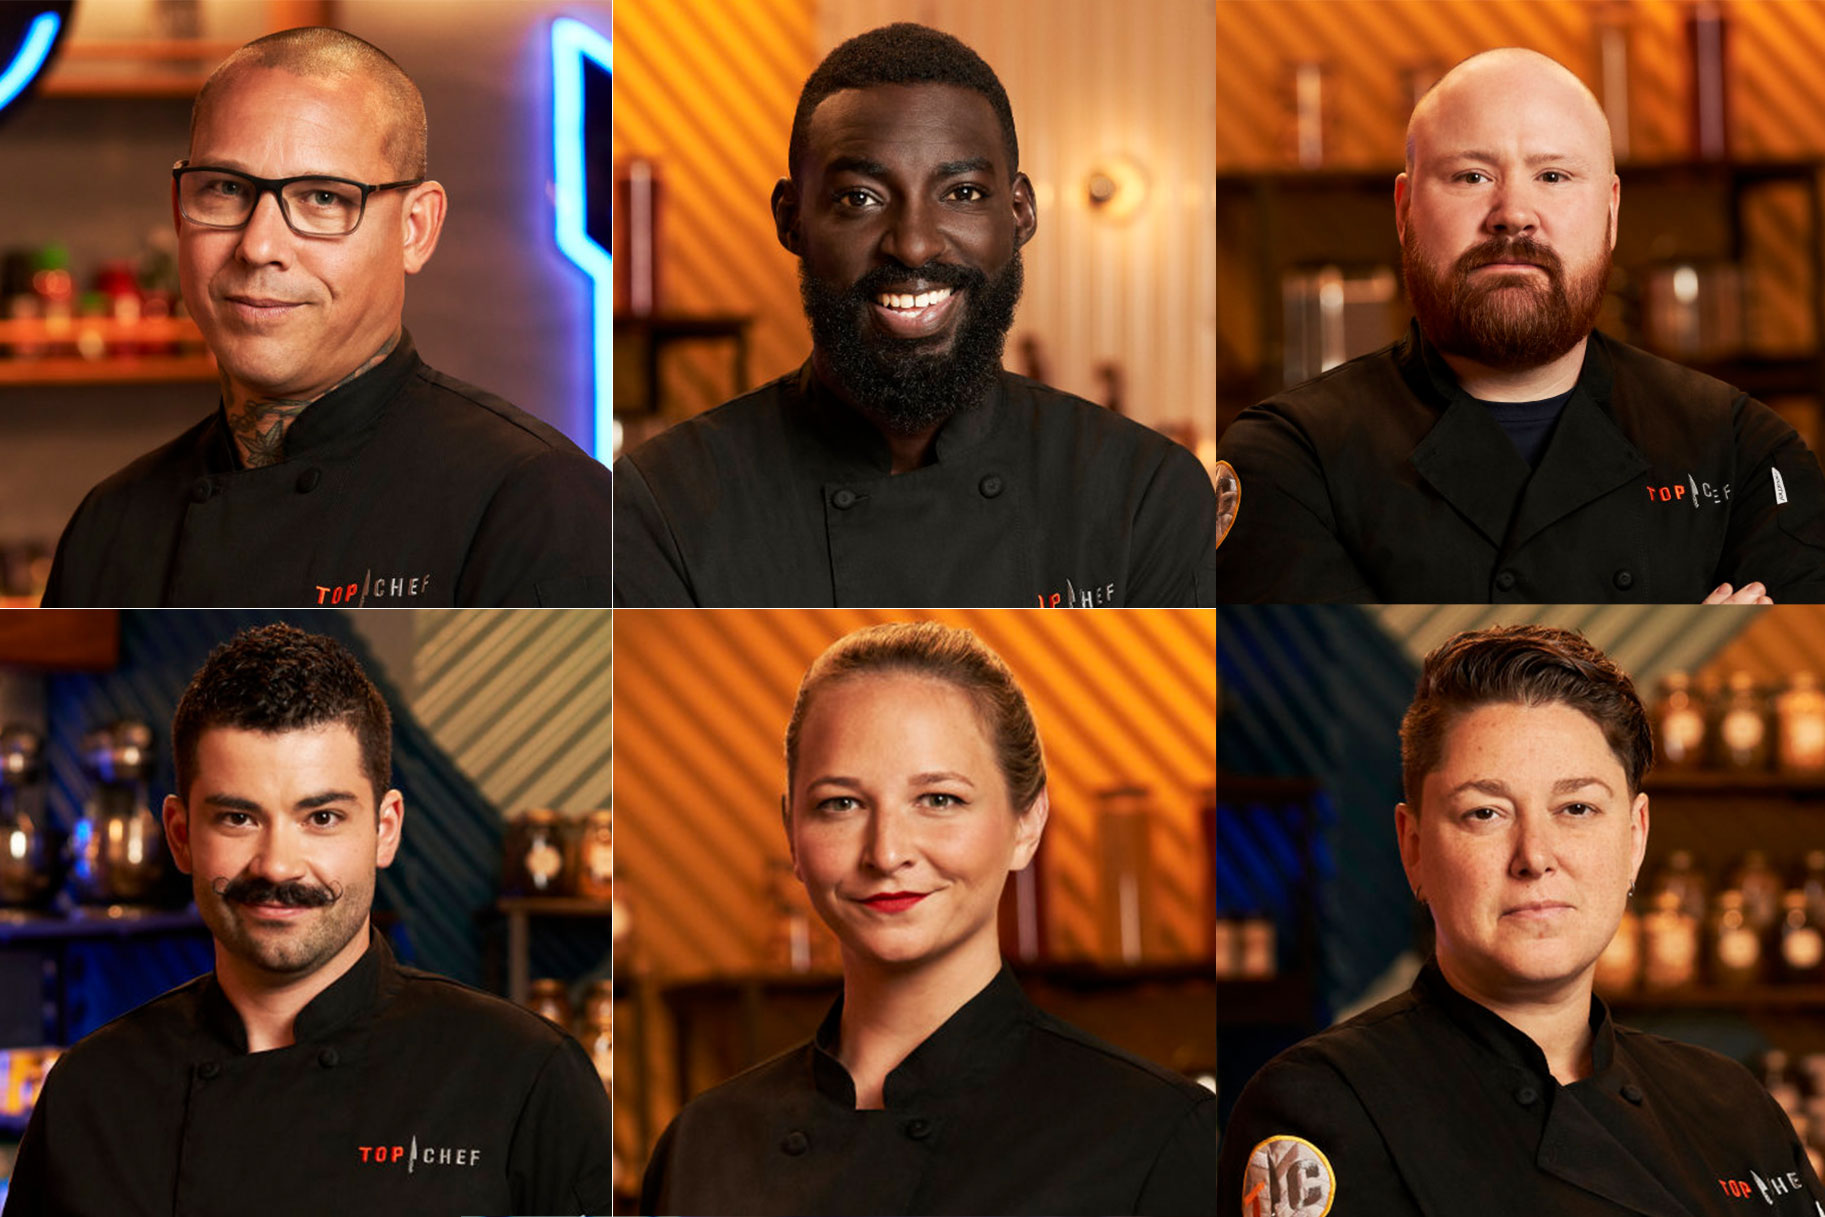 Check out the Cheftestants and Alums Appearing at the First-Ever Bravo's Top Chef Food & Wine Festival